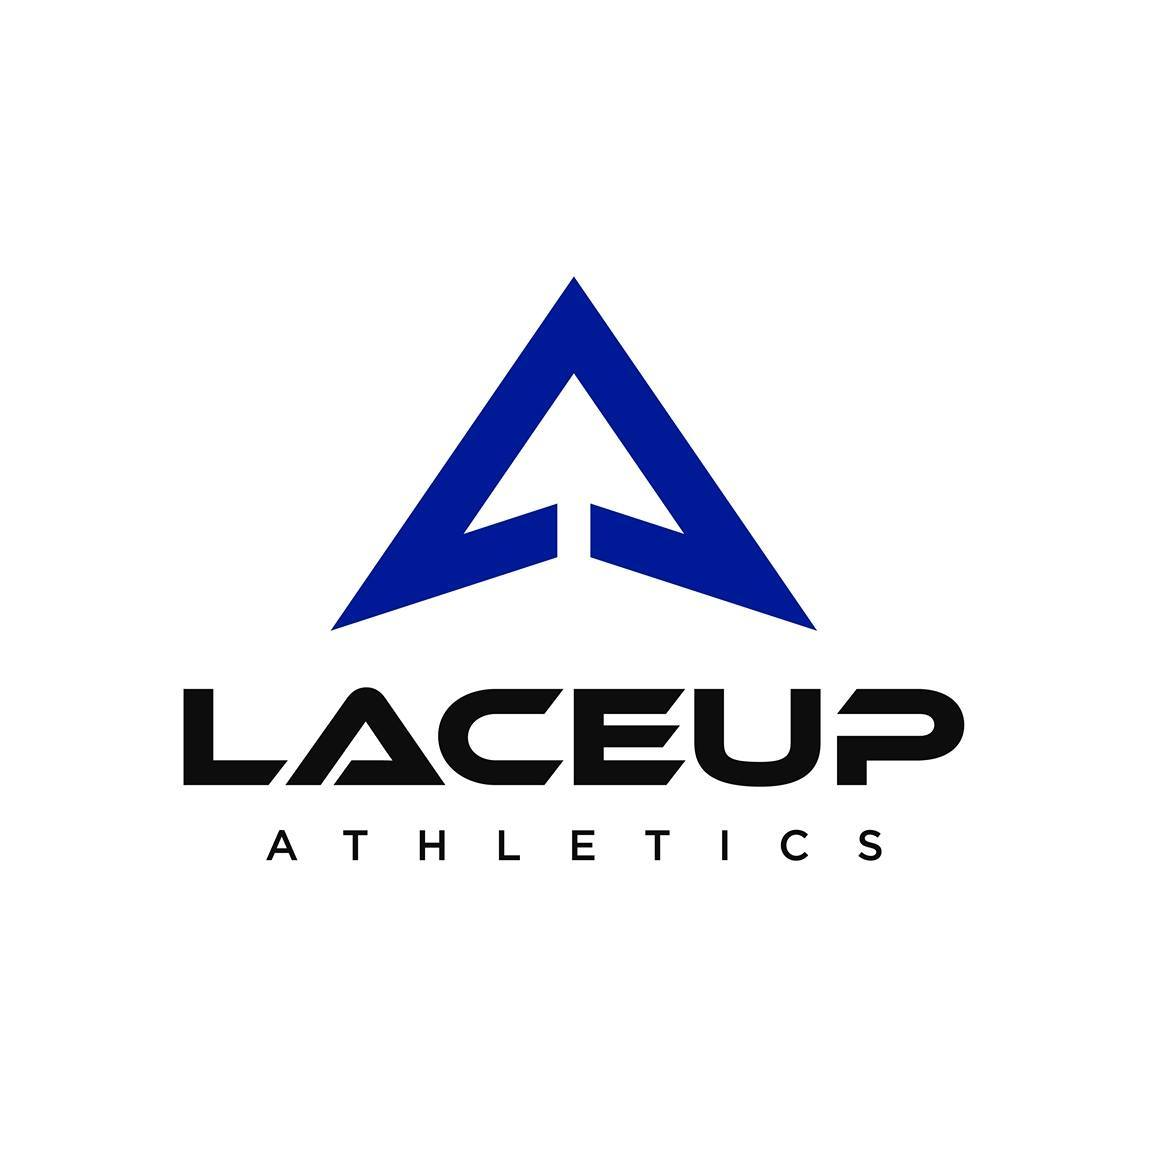 laceupathletics Logo